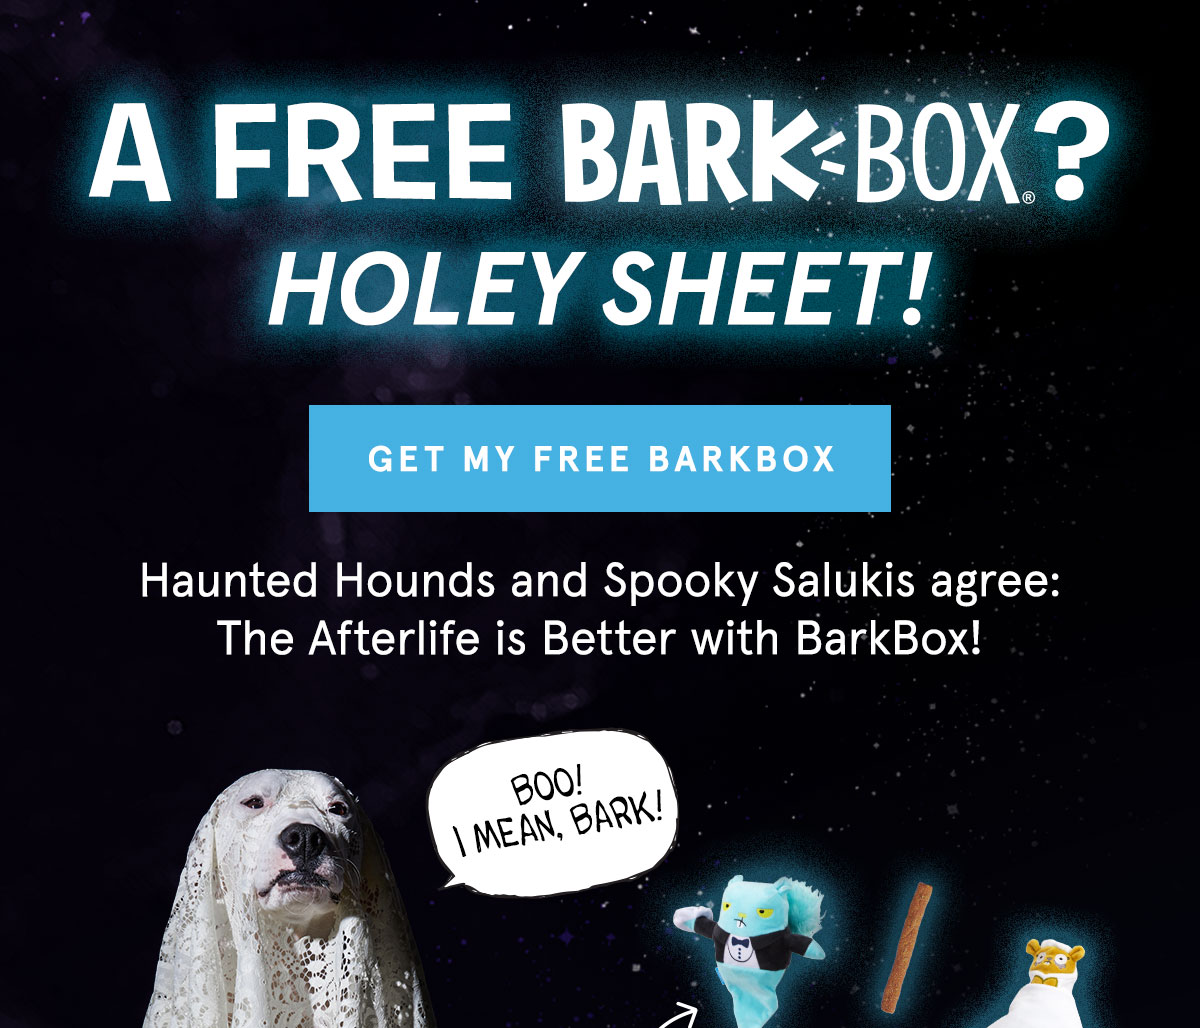 A Free BarkBox? Holey Sheet! | GET MY FREE BARKBOX